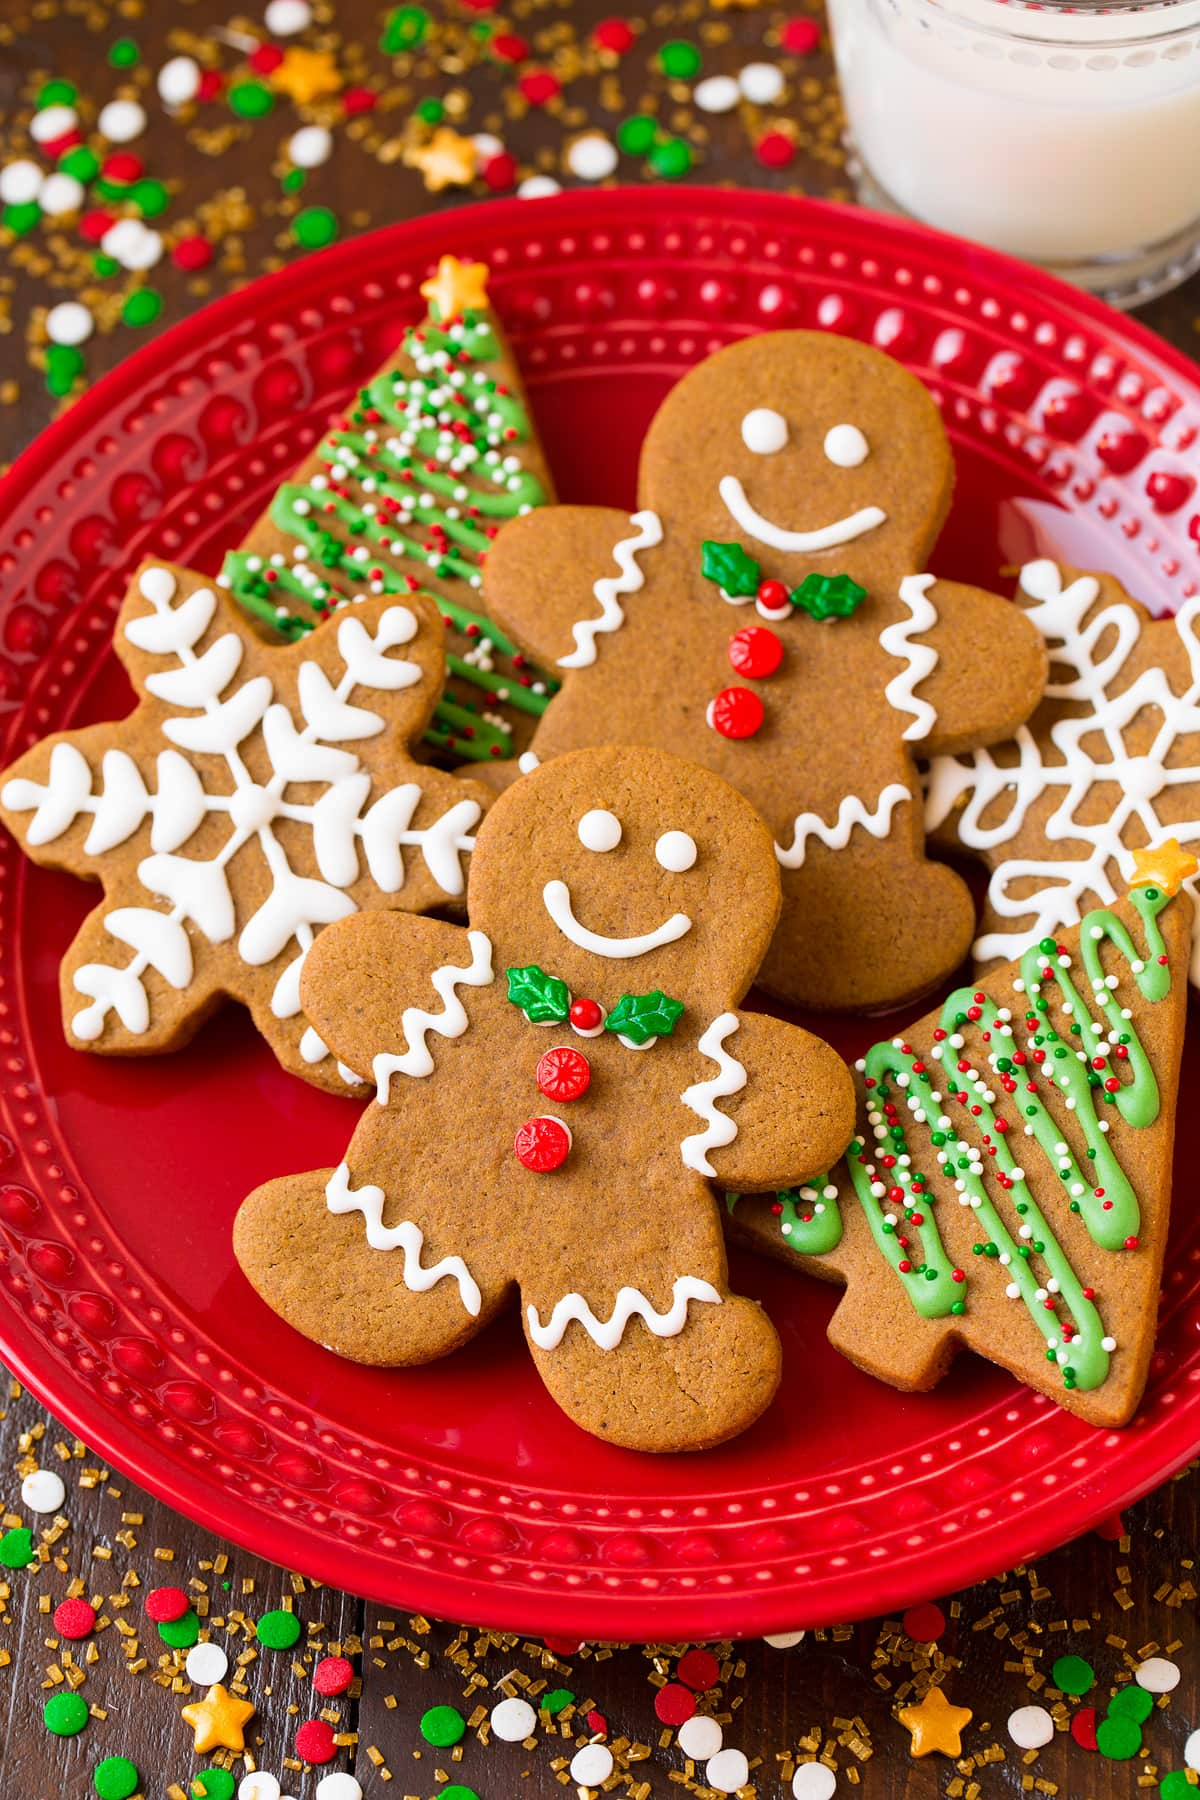 Gingerbread men cookies and trees and snowflakes on a red plate surrounded by Christmas sprinkles.